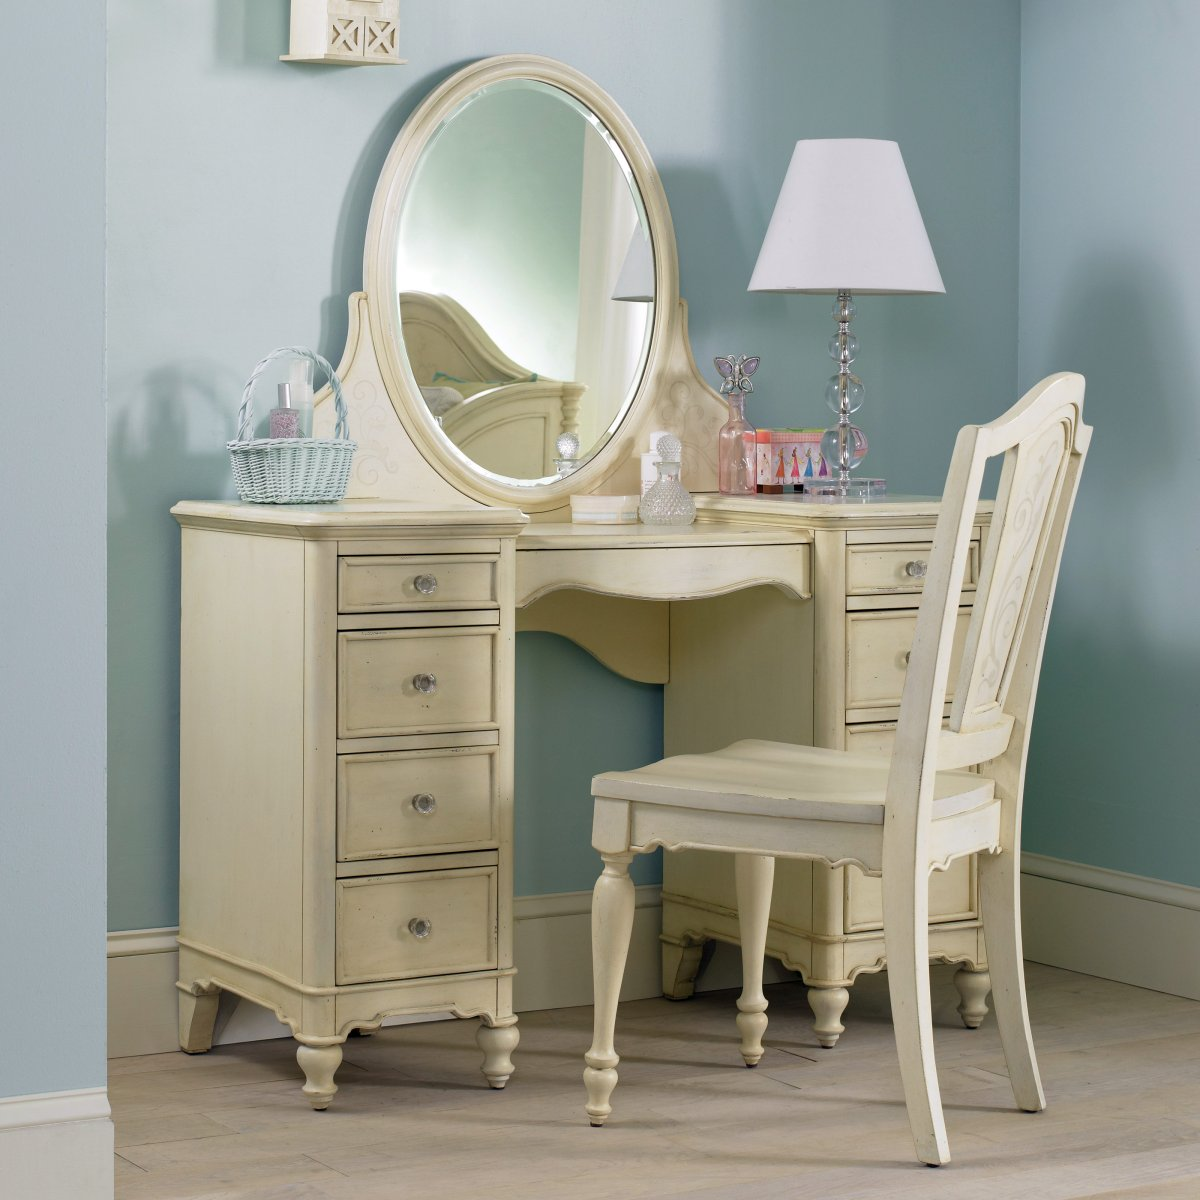 Image of: Antique Bedroom Vanity Wooden